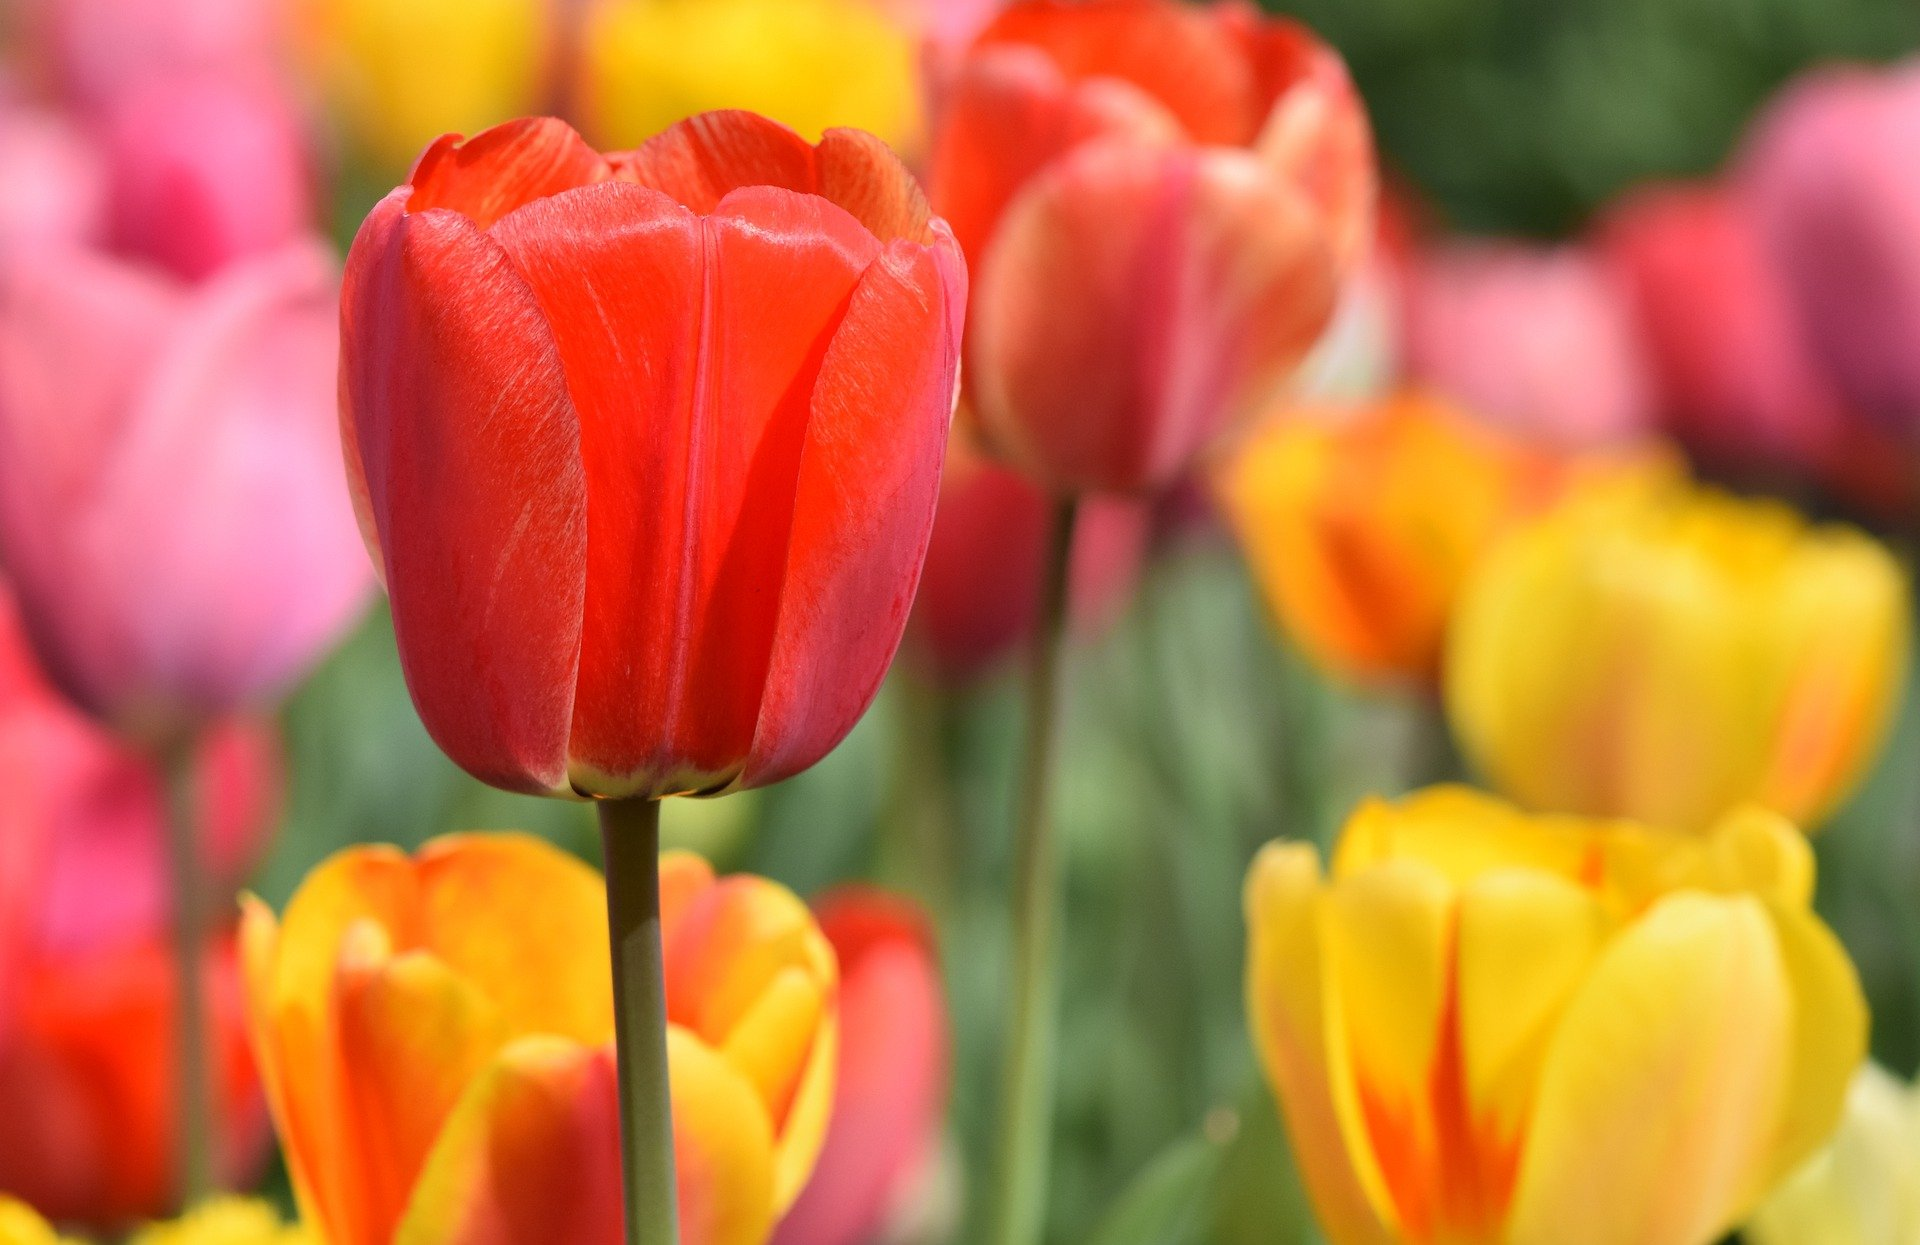 Growing Tulips How To Plant Grow And Care For Tulip Flowers The Old Farmer S Almanac